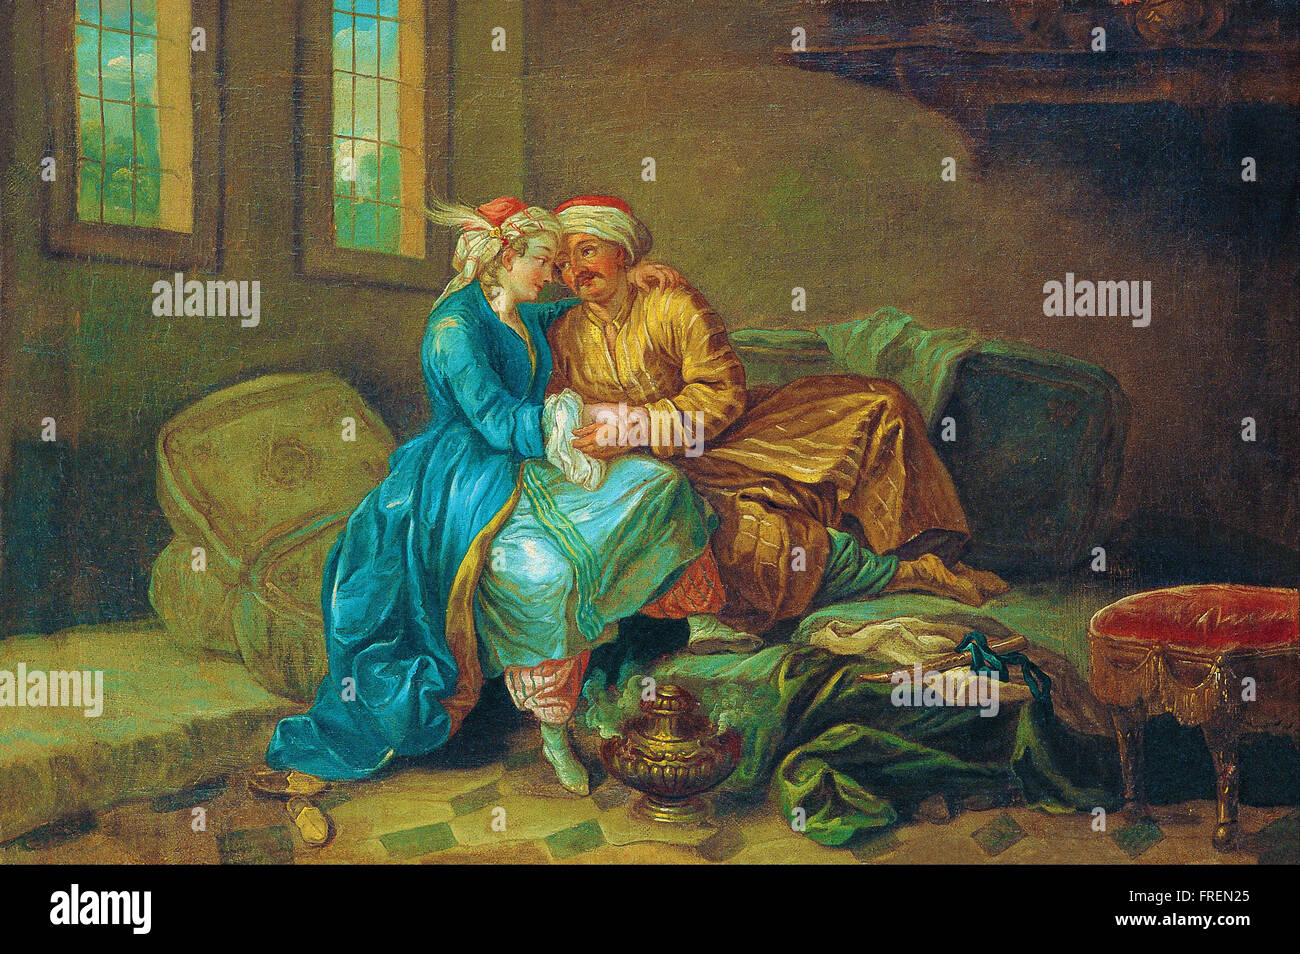 Etienne Jeaurat - The Favourite Sultana - Stock Image